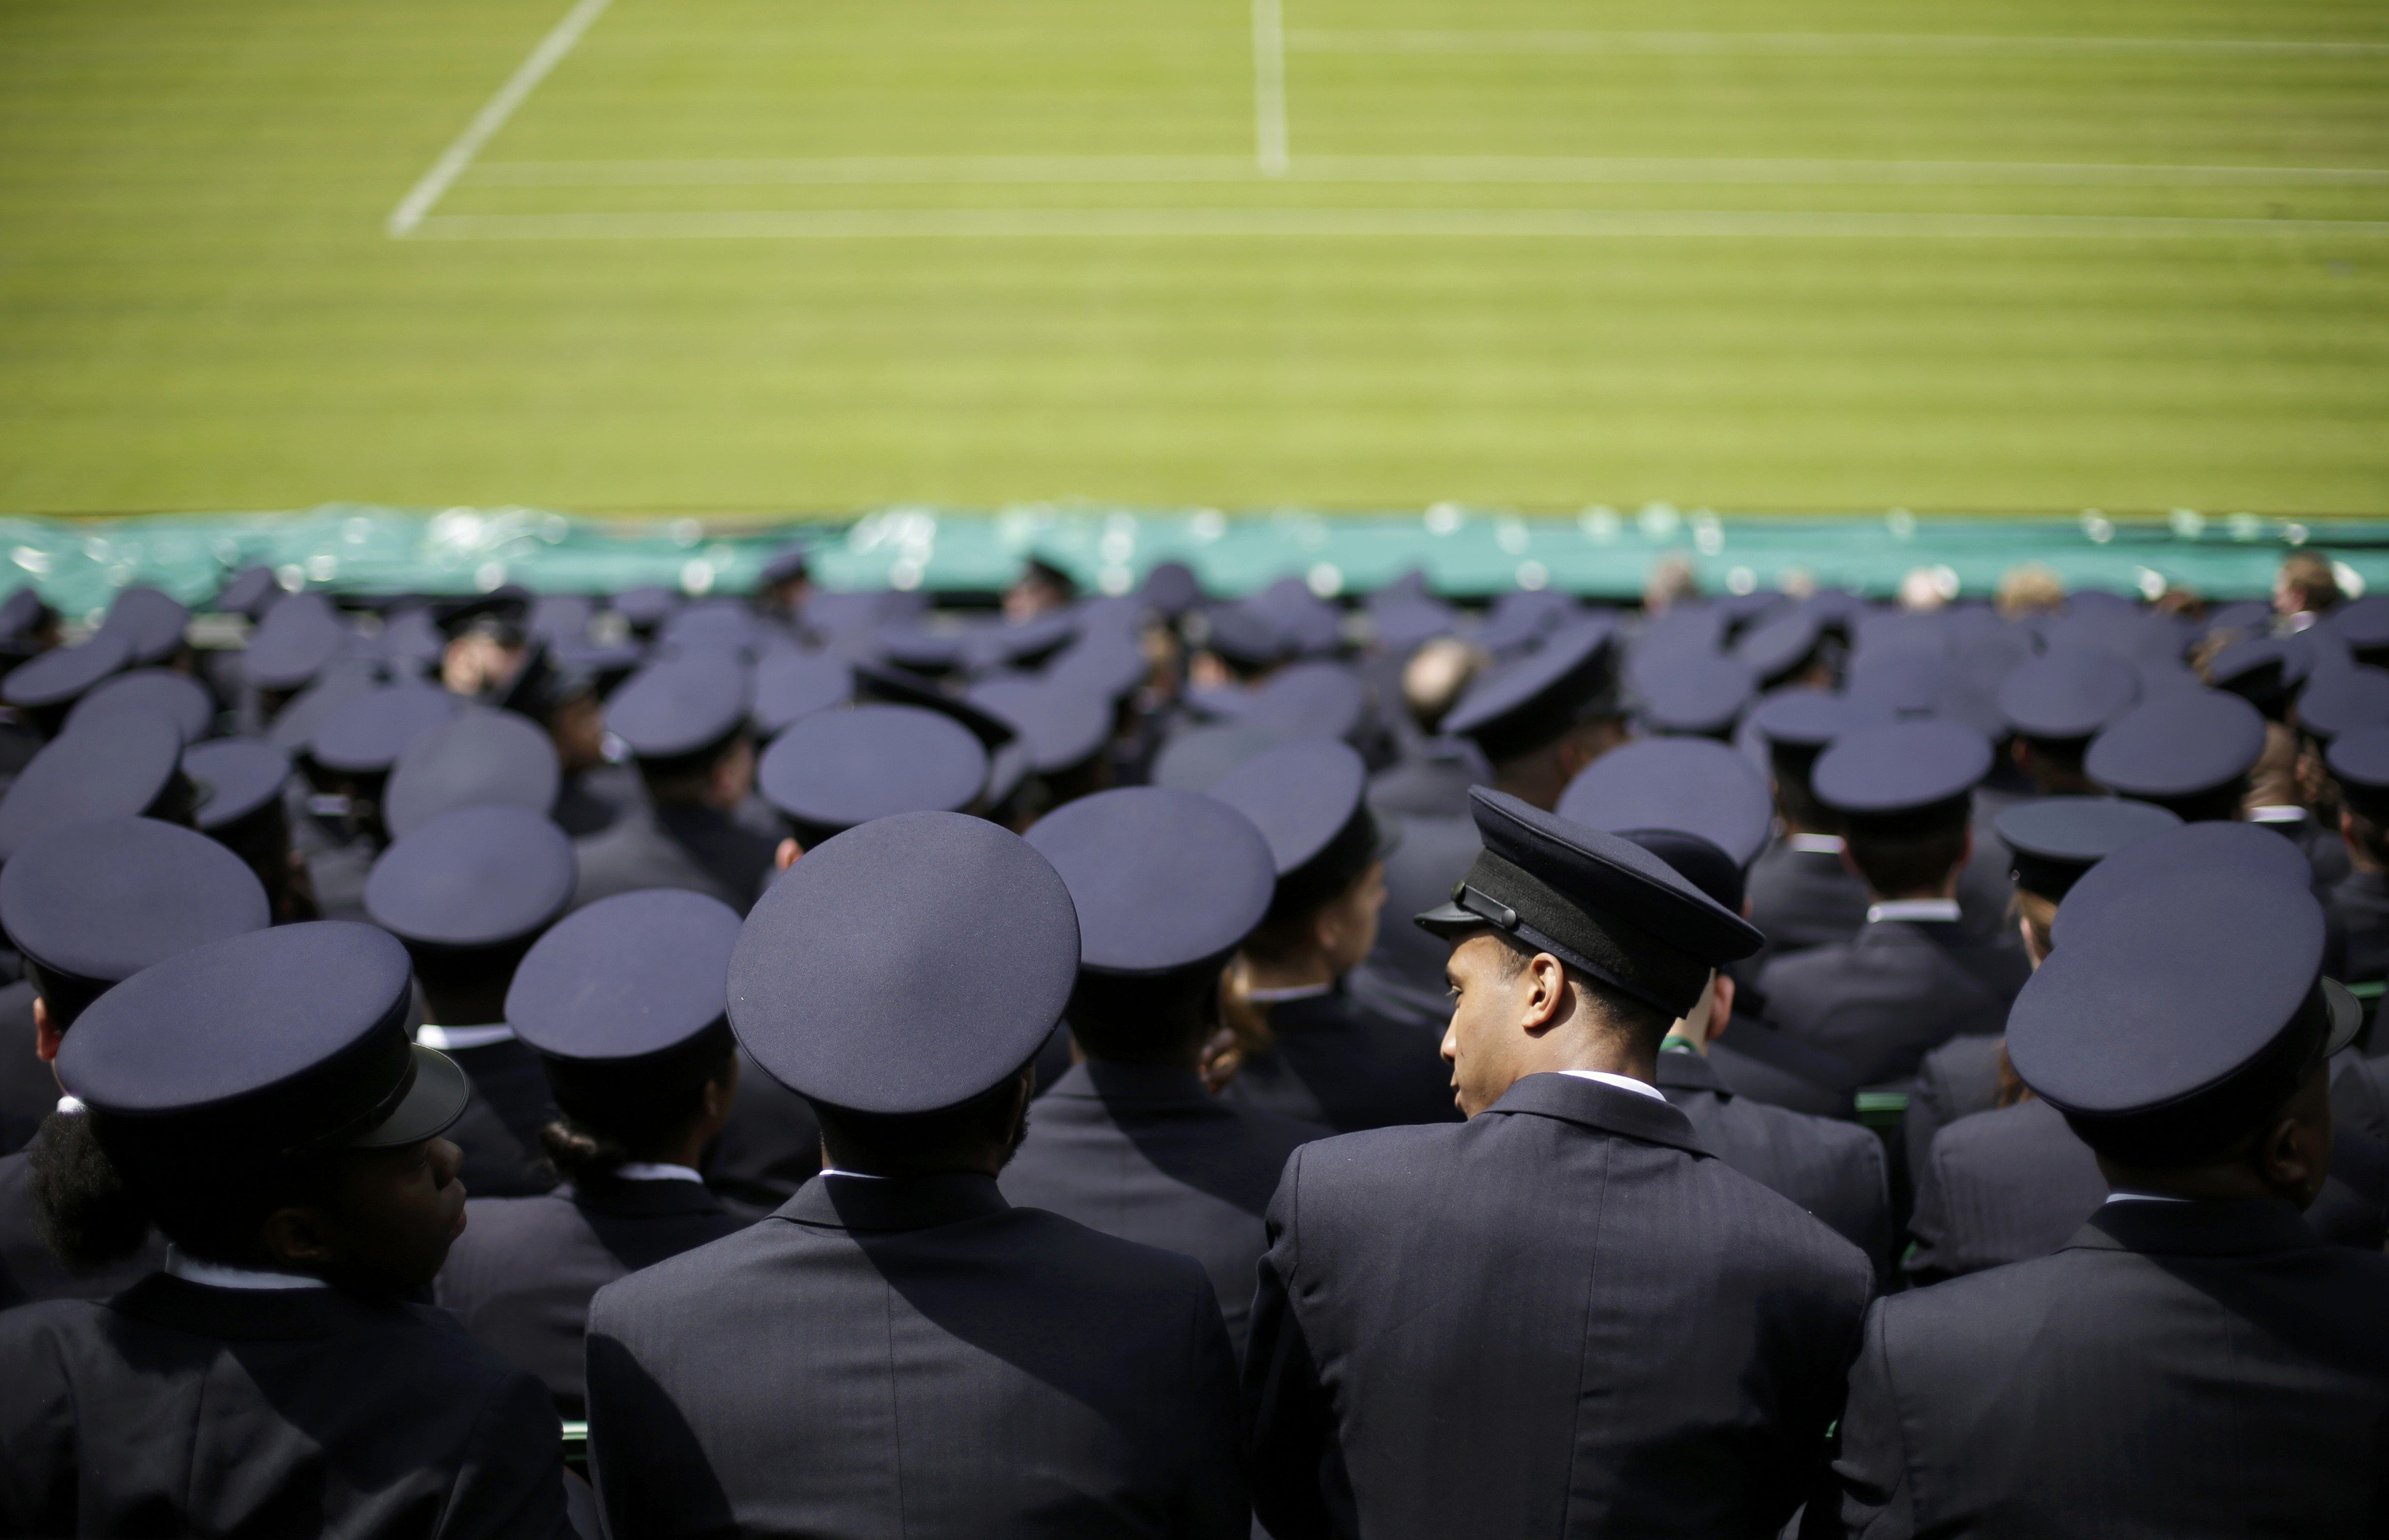 Stewards sit together for a meeting the day before the start of the Wimbledon Tennis Championships, in London on June 22, 2014.